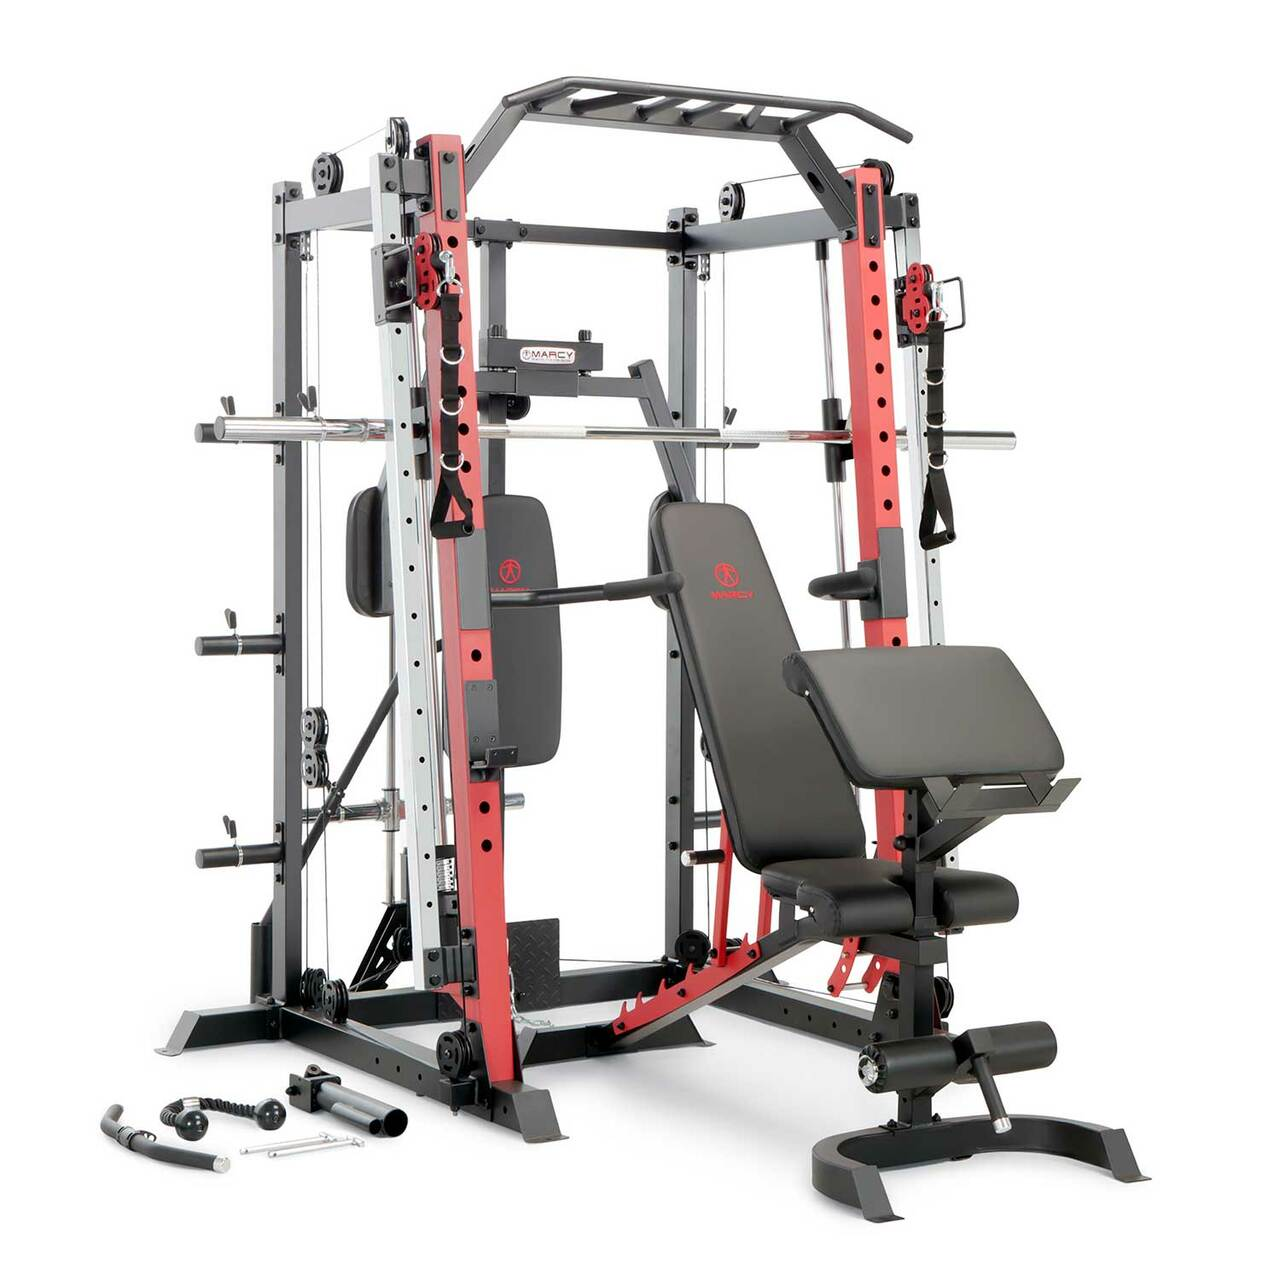 Get a Power Tower workout using the multi-grip pull-up bar and height adjustable dip bars.